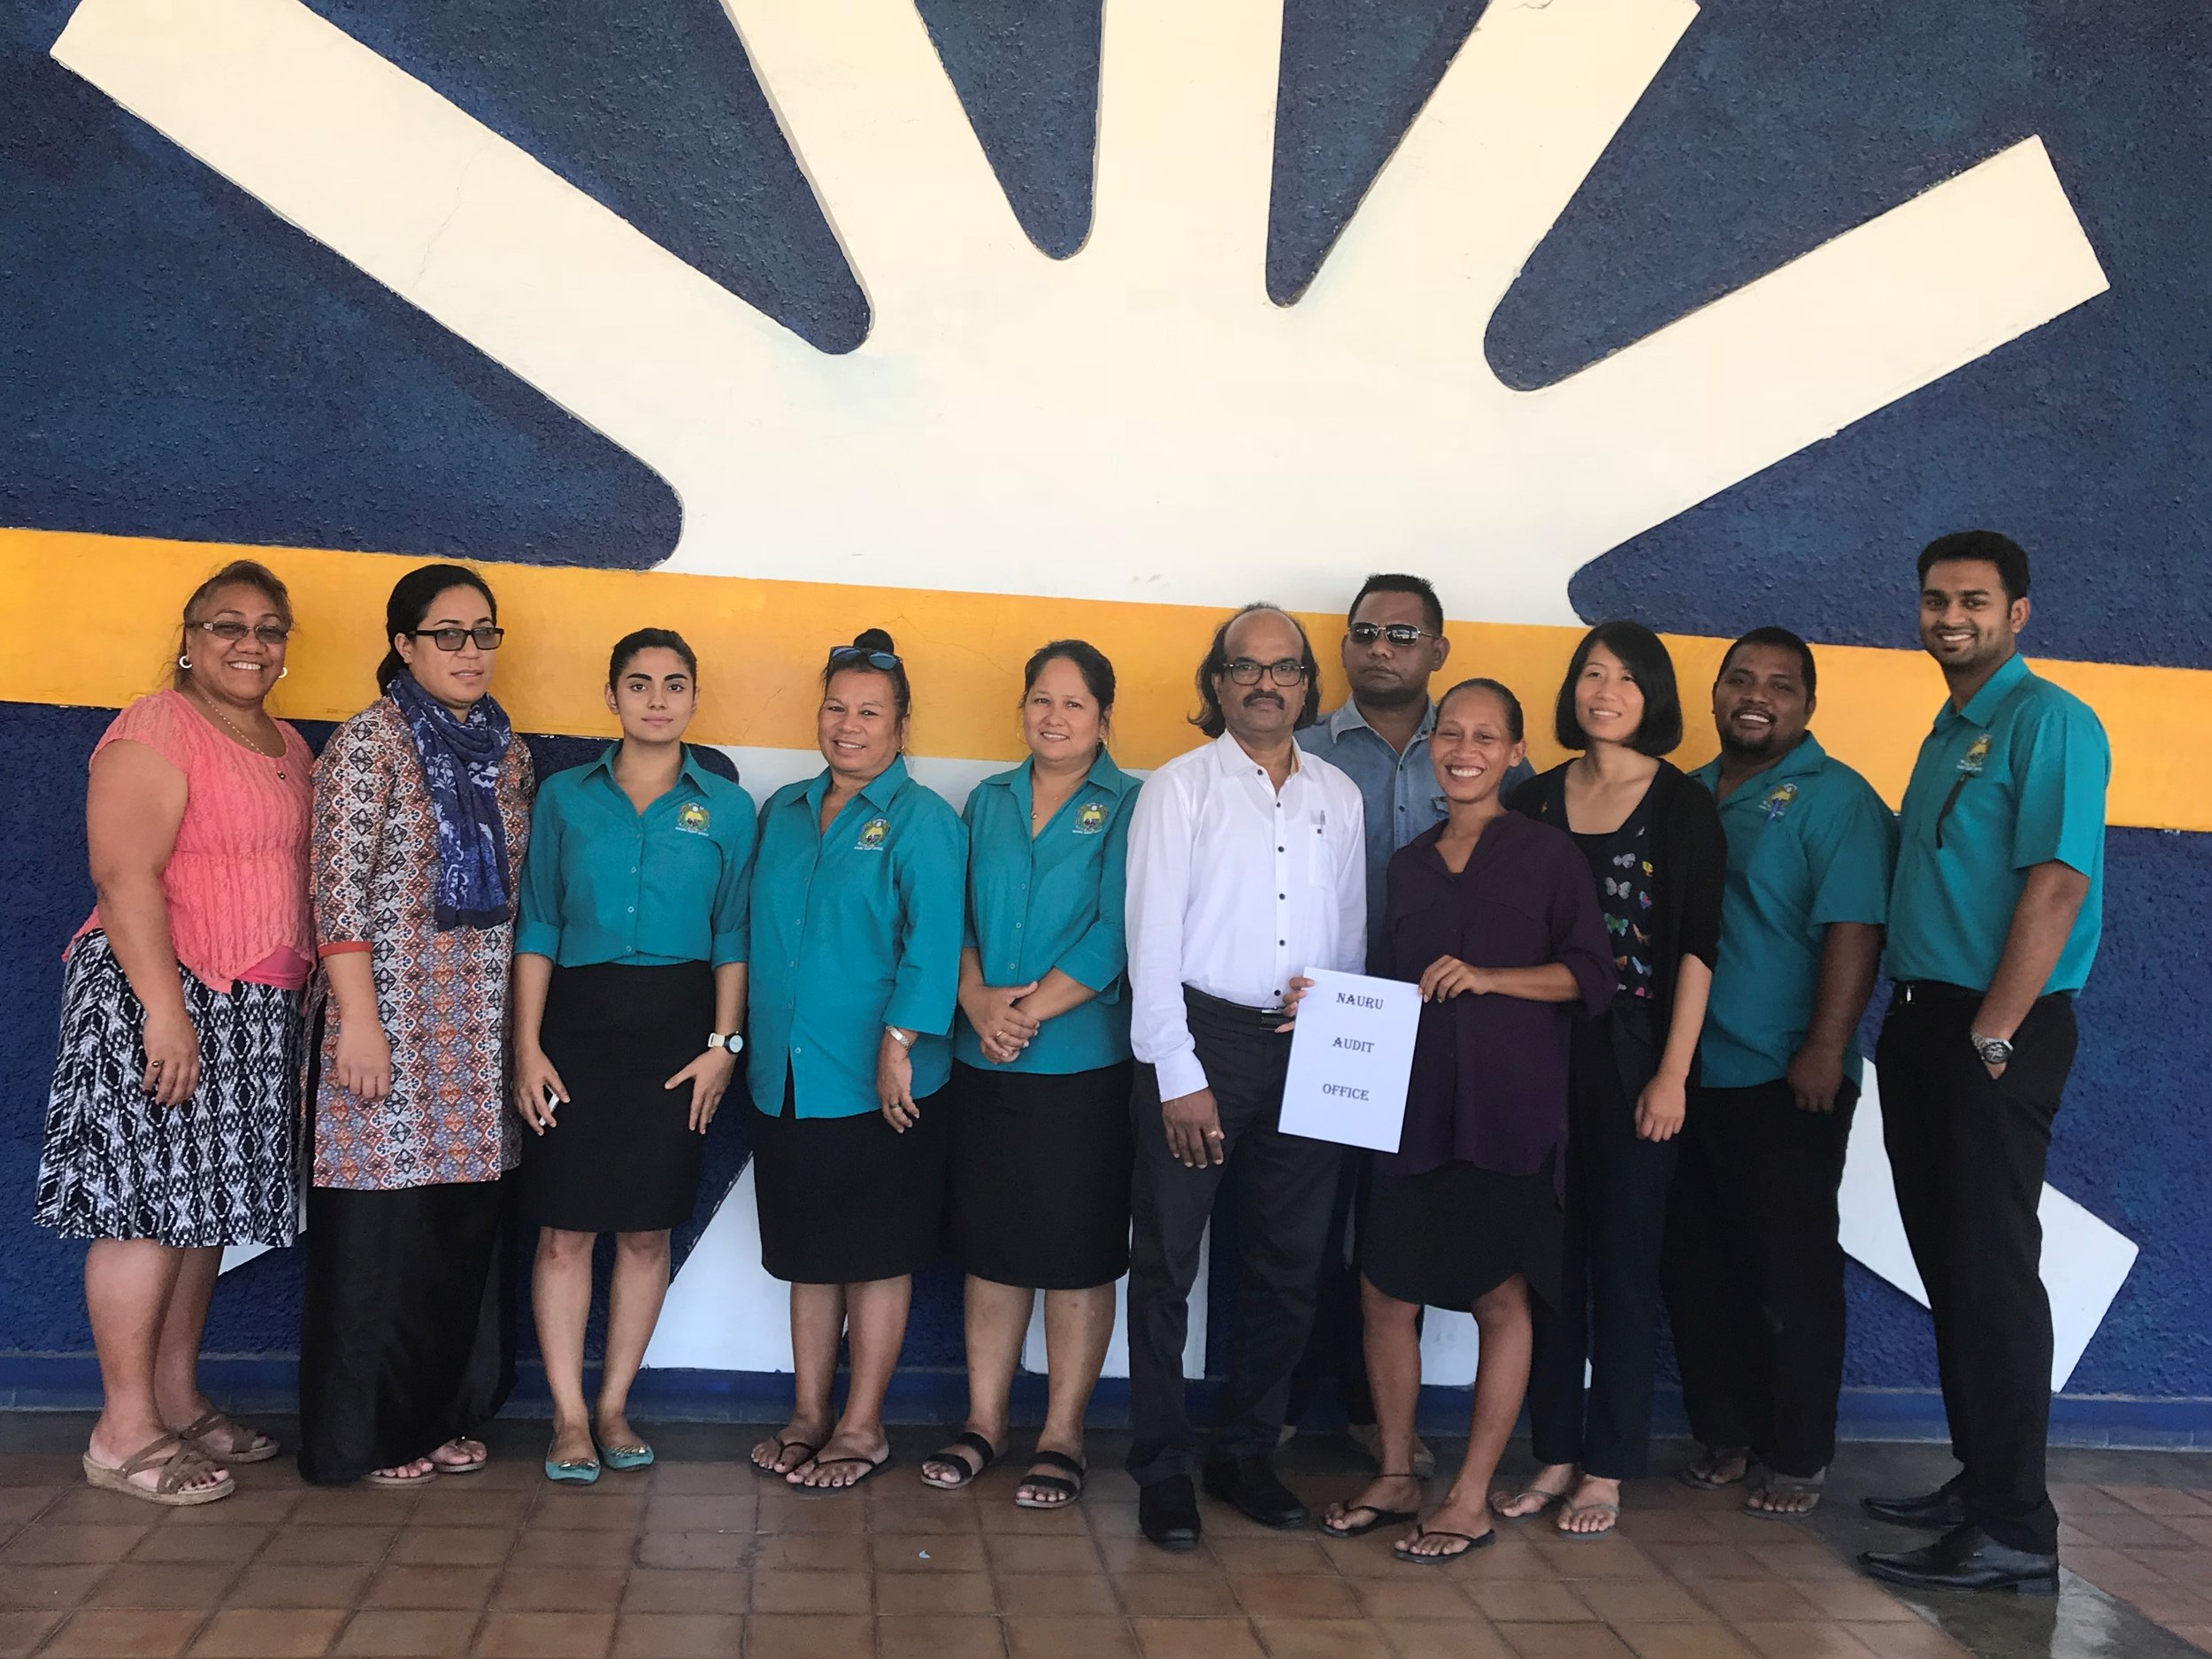 The SAI PMF Assessment team for the Nauru SAI PMF assessment in 2018, with Sinaroseta Palamo-Iosefo far left and Irina Sprenglewski third from right.